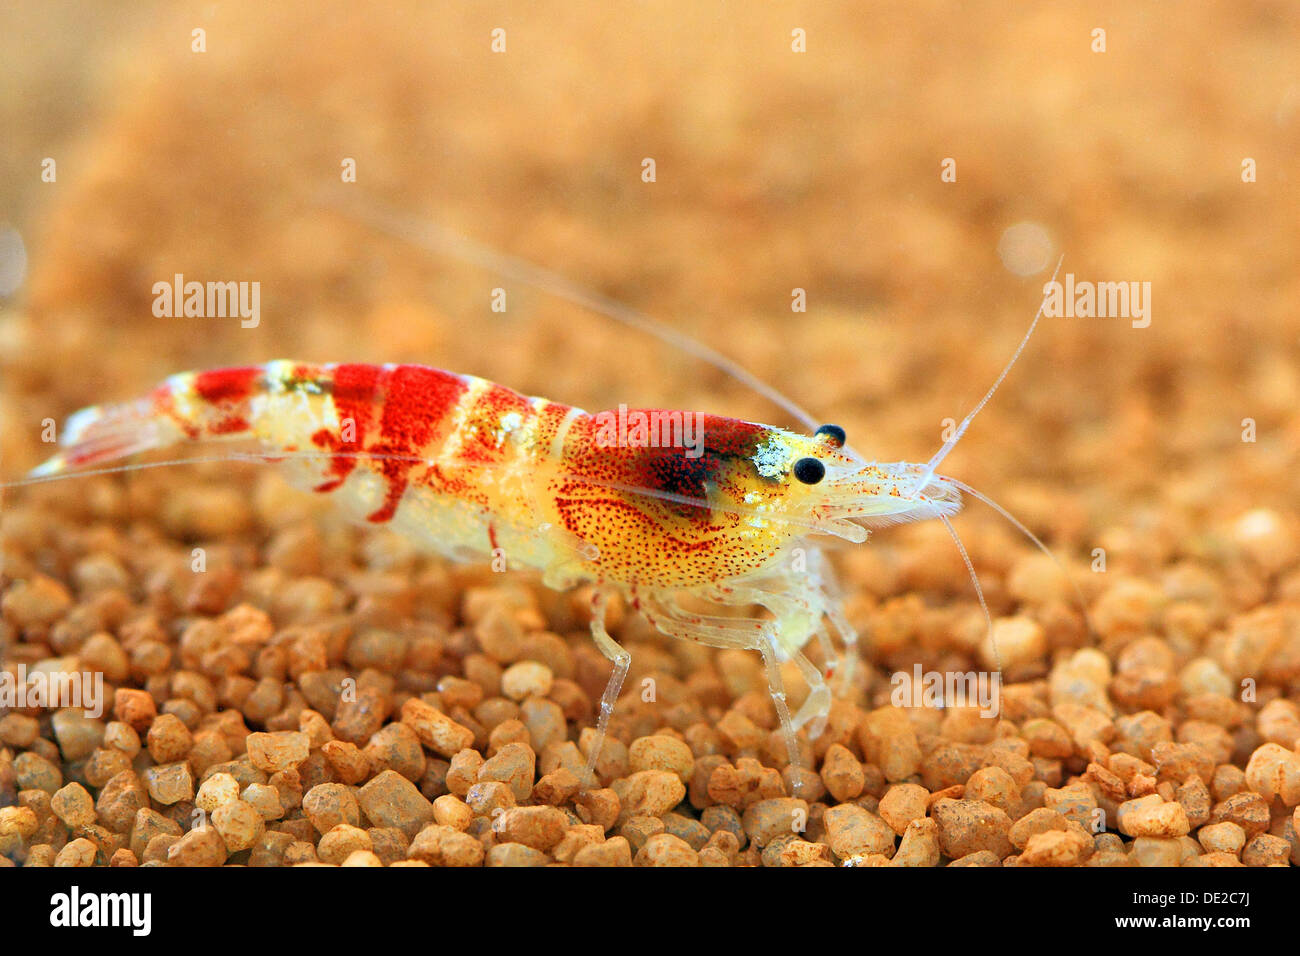 Colourful freshwater shrimp, Crystel Red - Stock Image